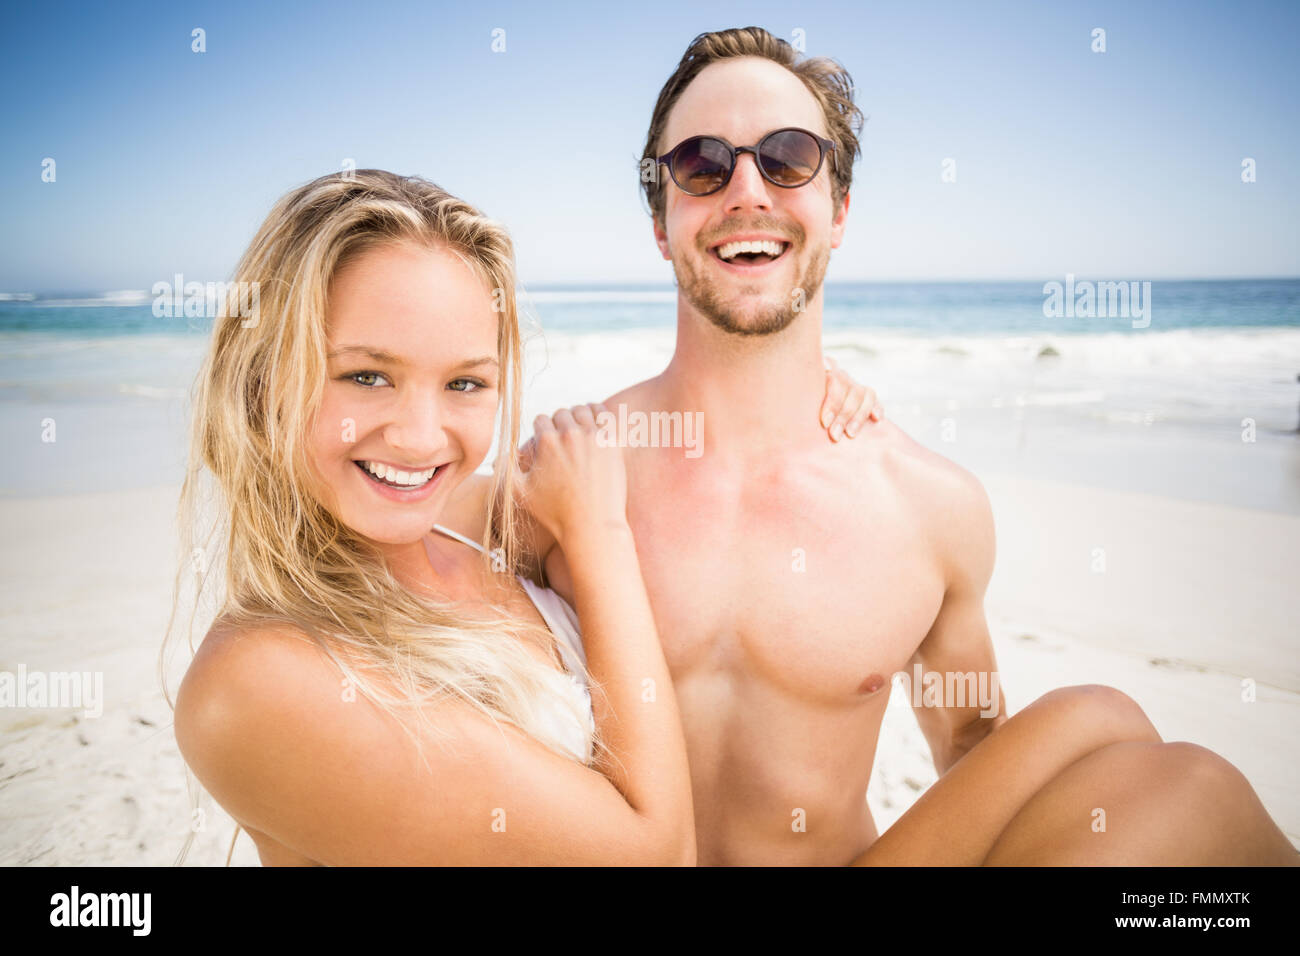 Man holding woman in his arms on the beach - Stock Image